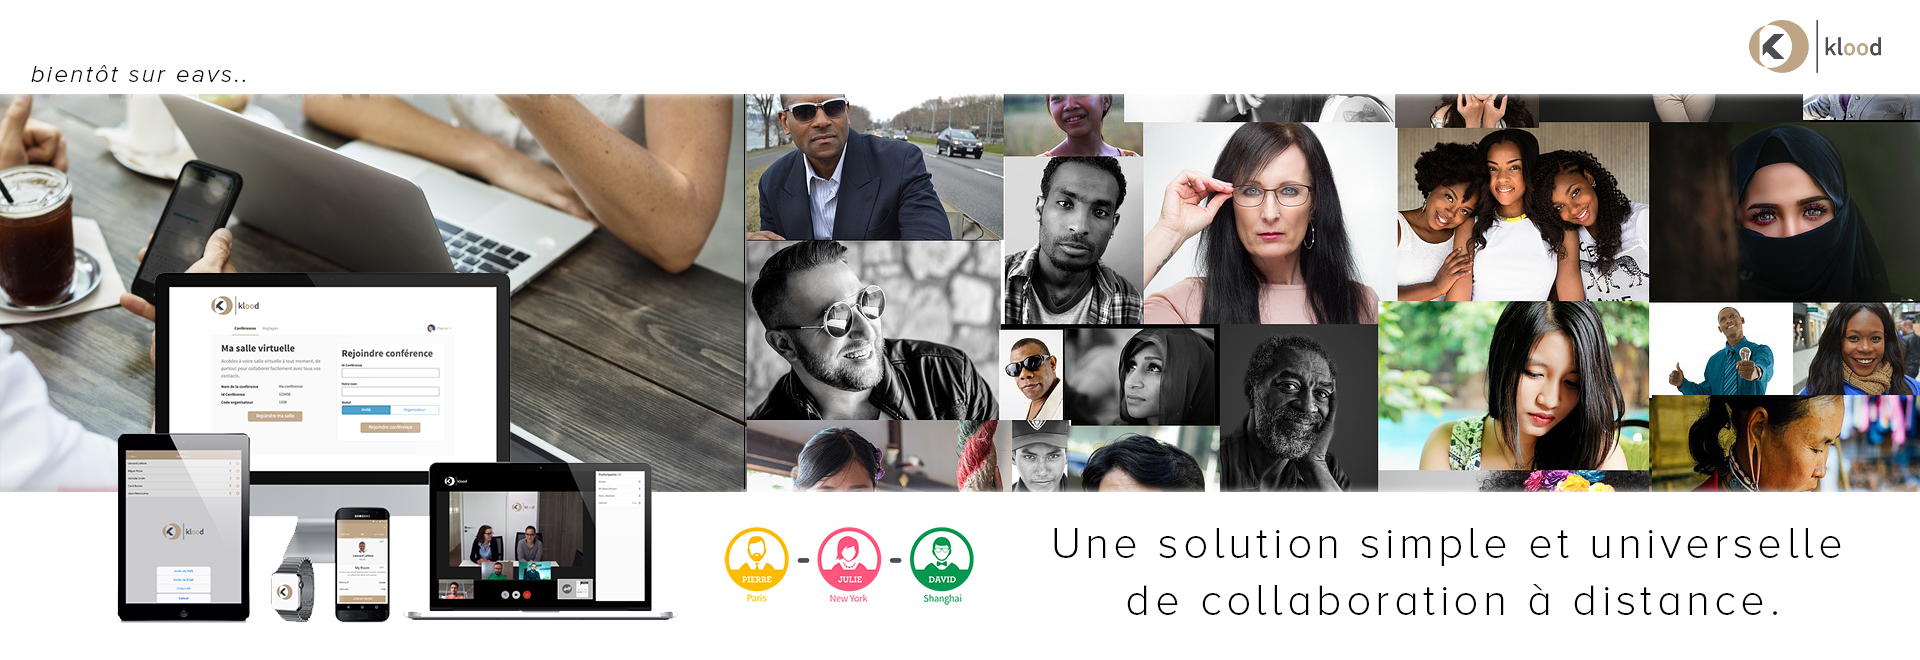 Une solution simple et universelle de collaboration à distance